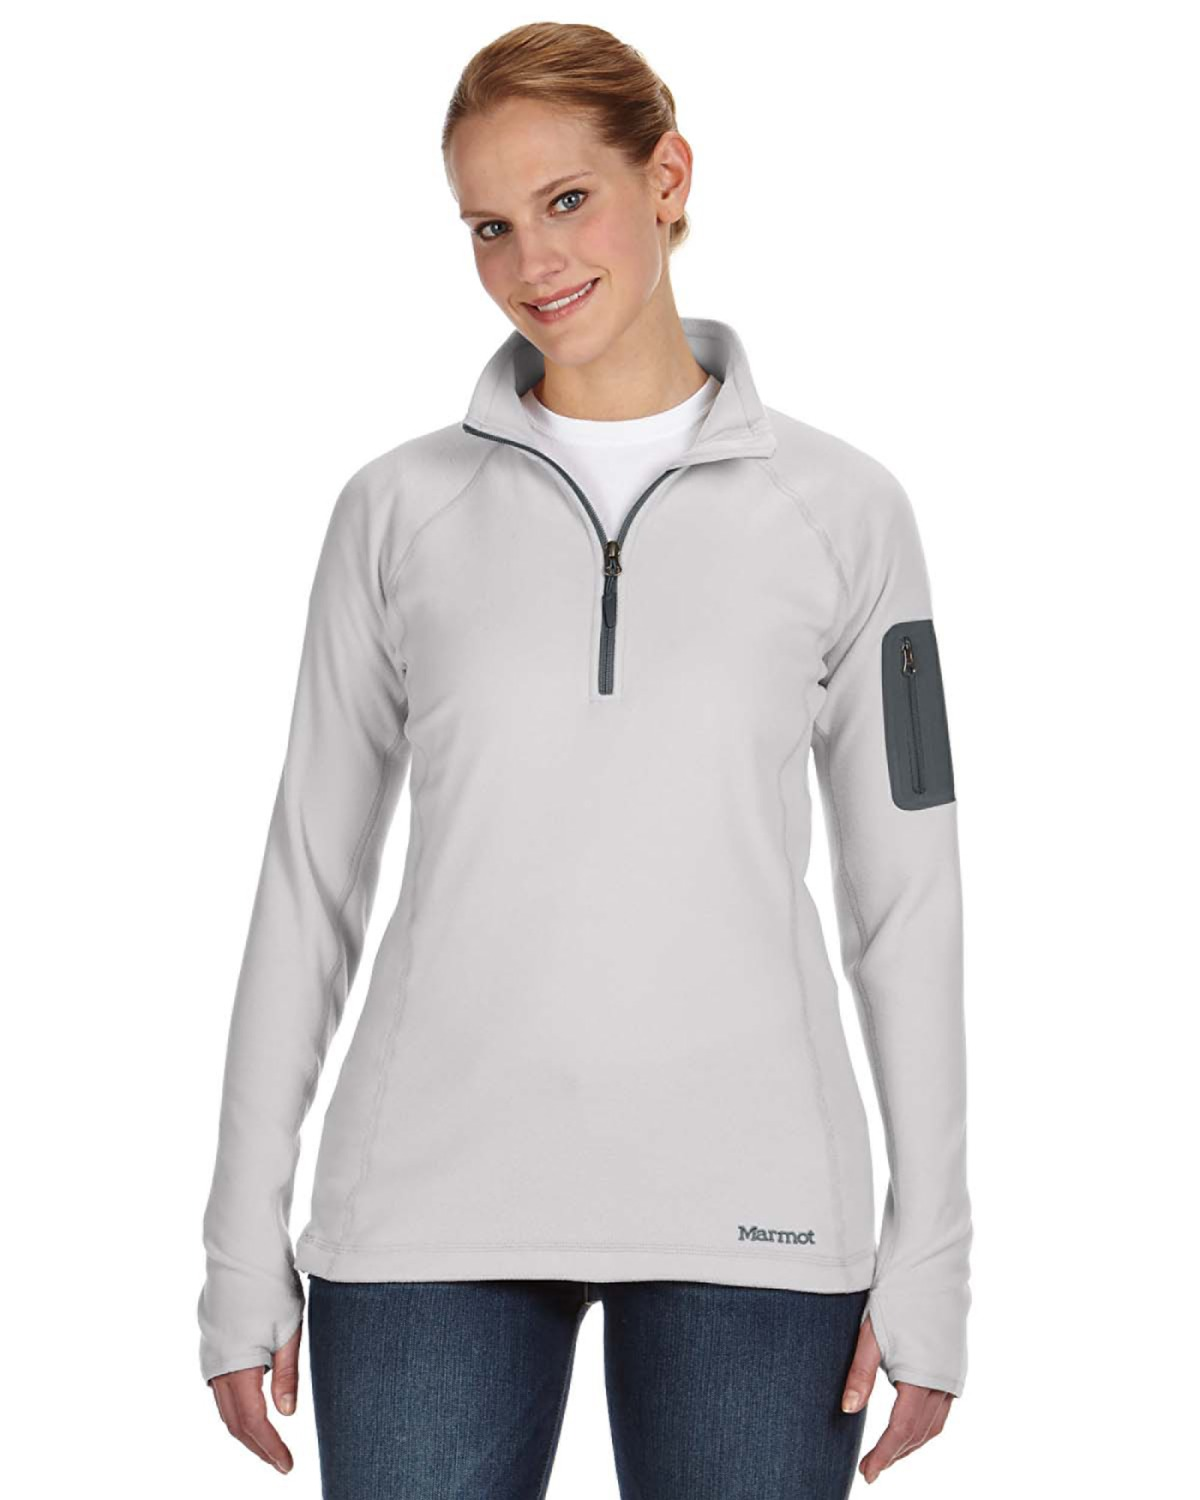 Marmot - 88250, Ladies' Flashpoint Half-Zip, Embroidery, Screen Printing - Logo Masters International